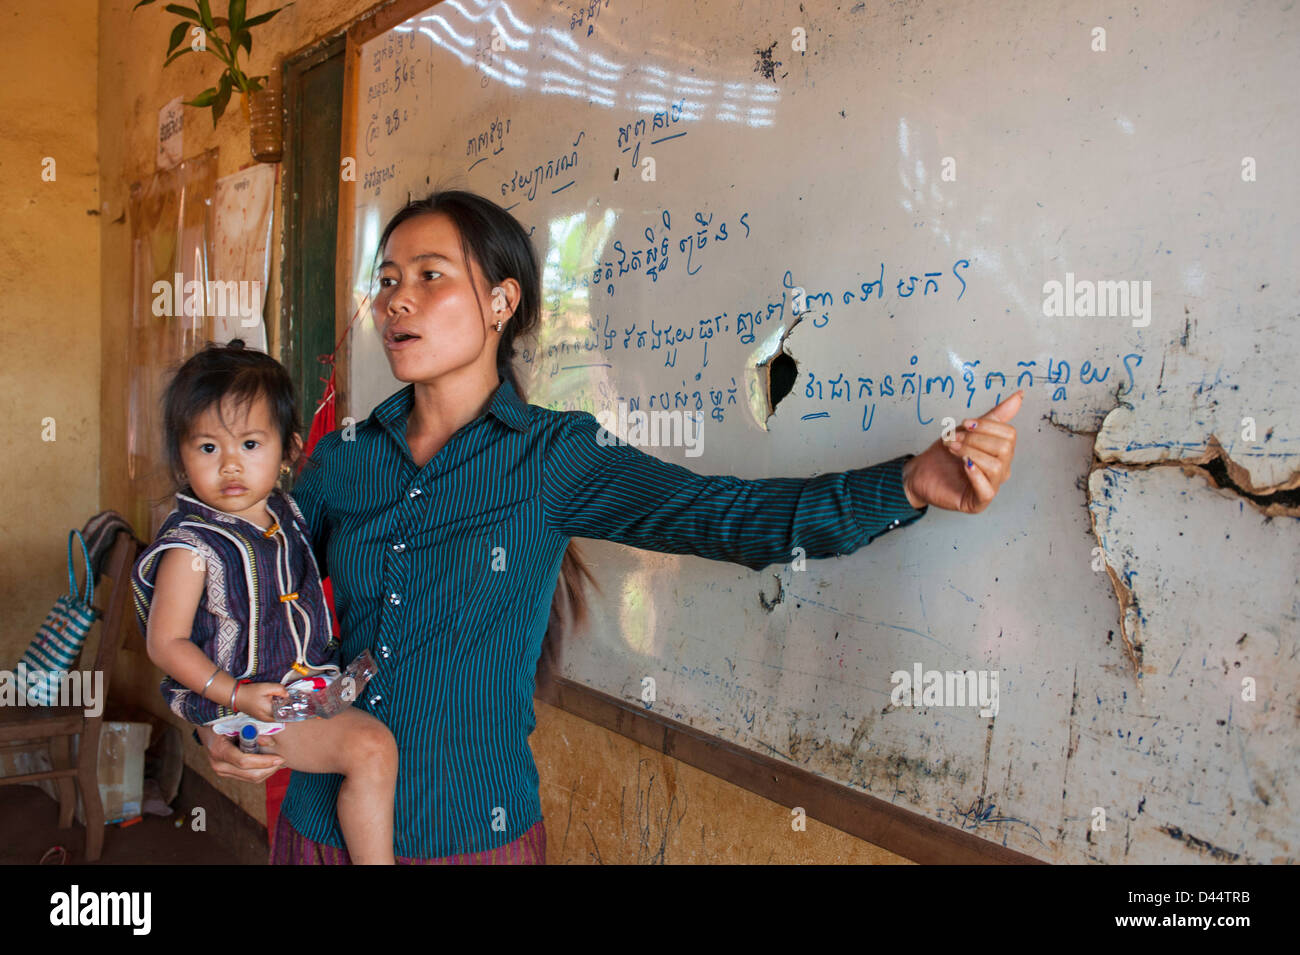 Cambodia teacher holding carrying her own child while teaching on a warped and cracked blackboard - Stock Image